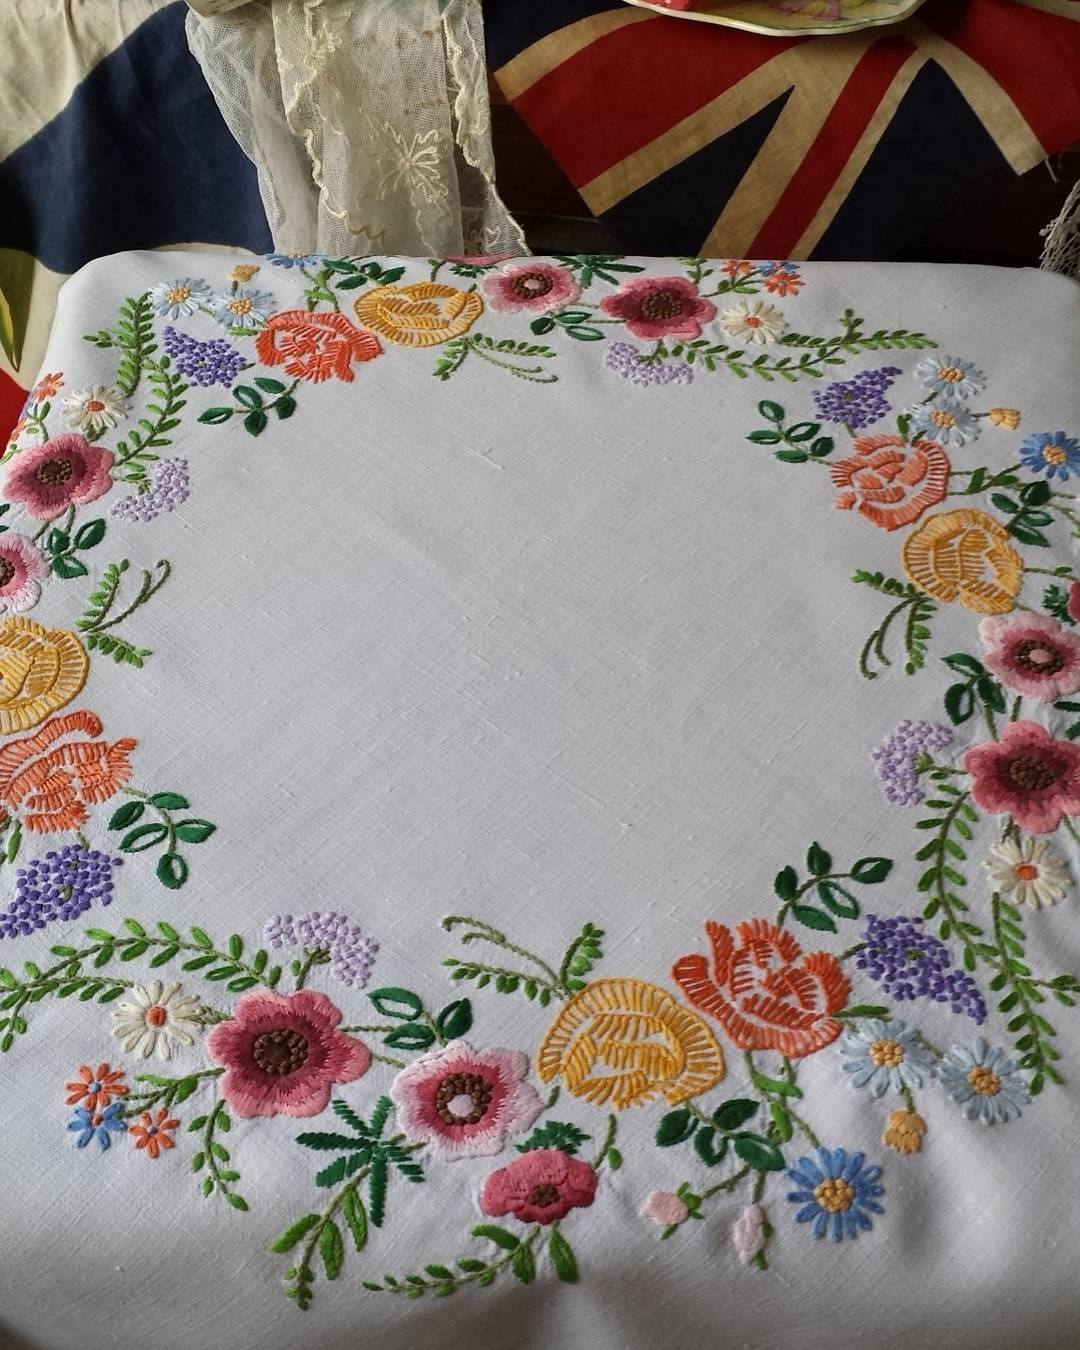 Big Vintage hand woven linen tablecloth flowers hearts cross stitch embroidery hand embroidered table cloth handmade cross stitching Folk